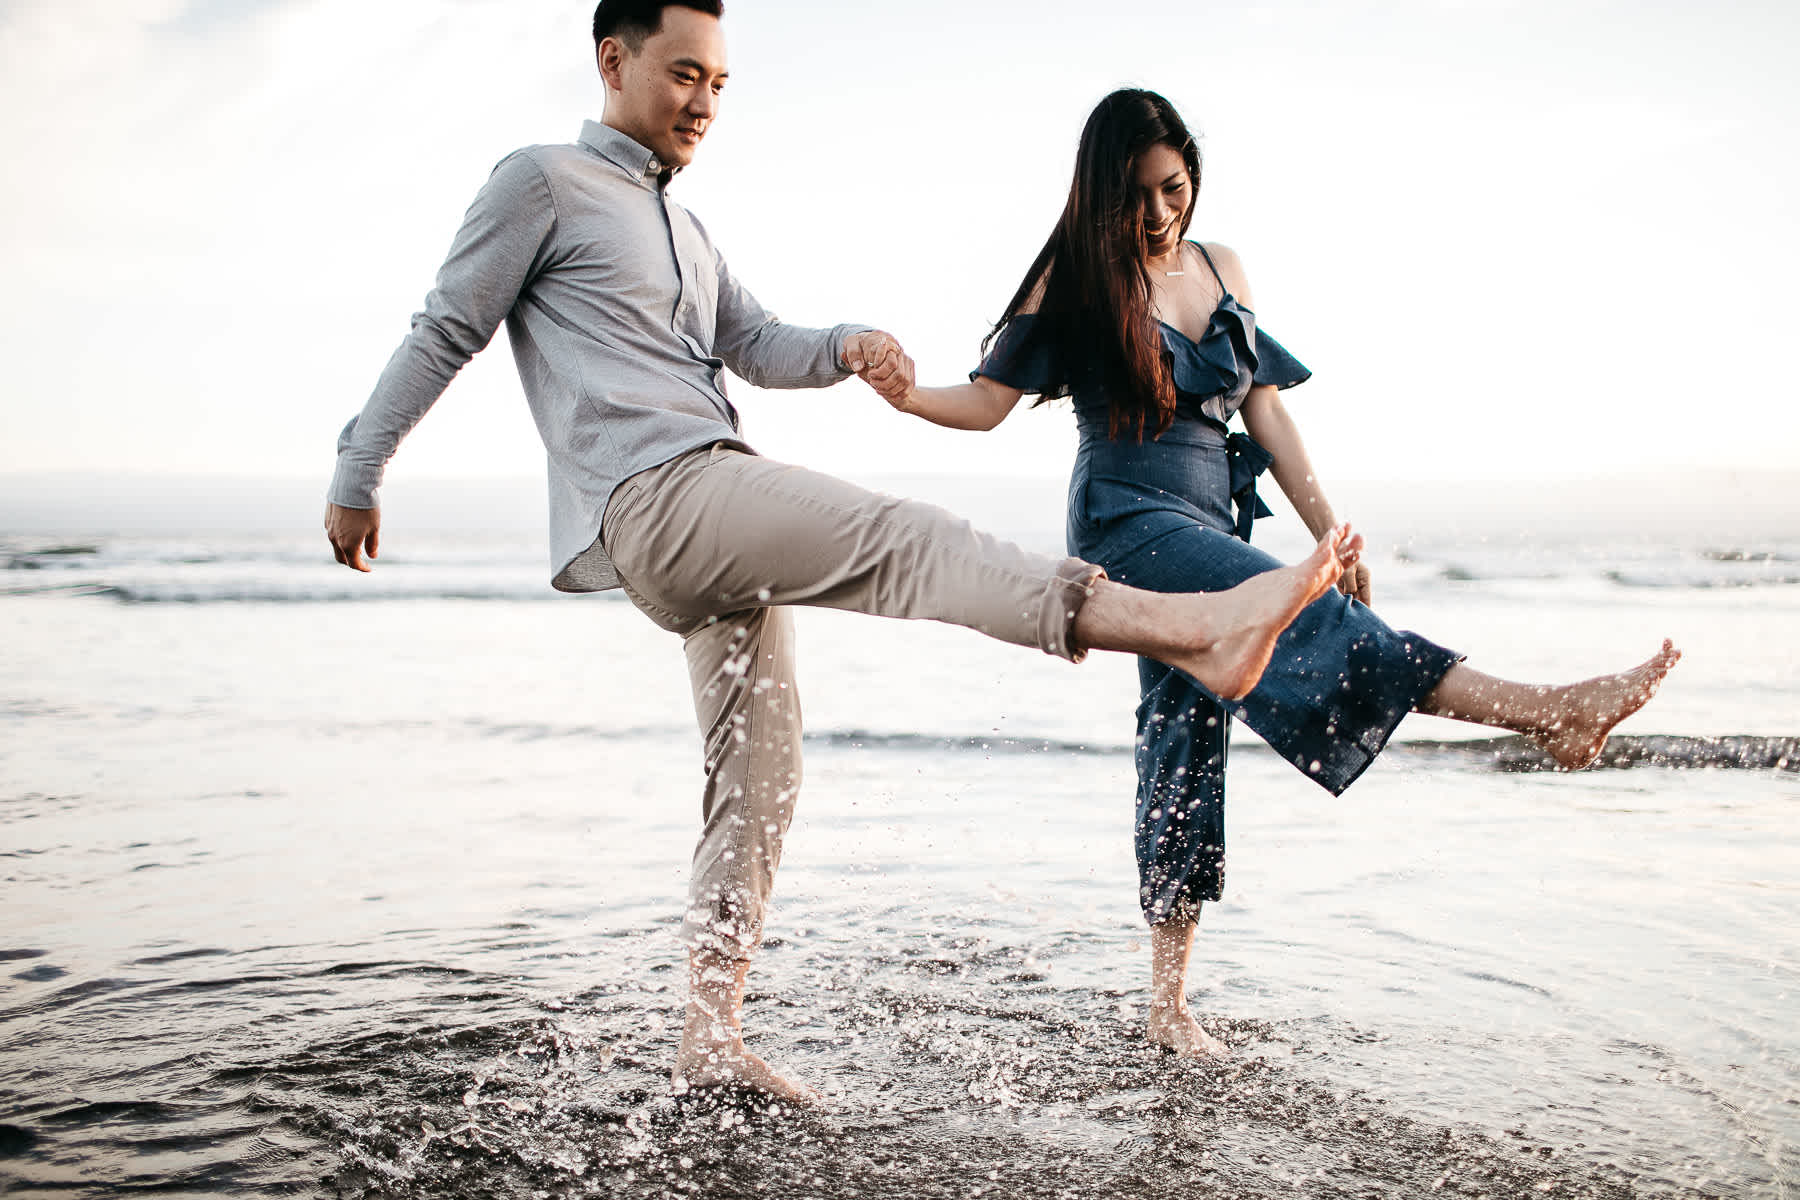 stinson-beach-muir-woods-sf-fun-quirky-engagement-session-25